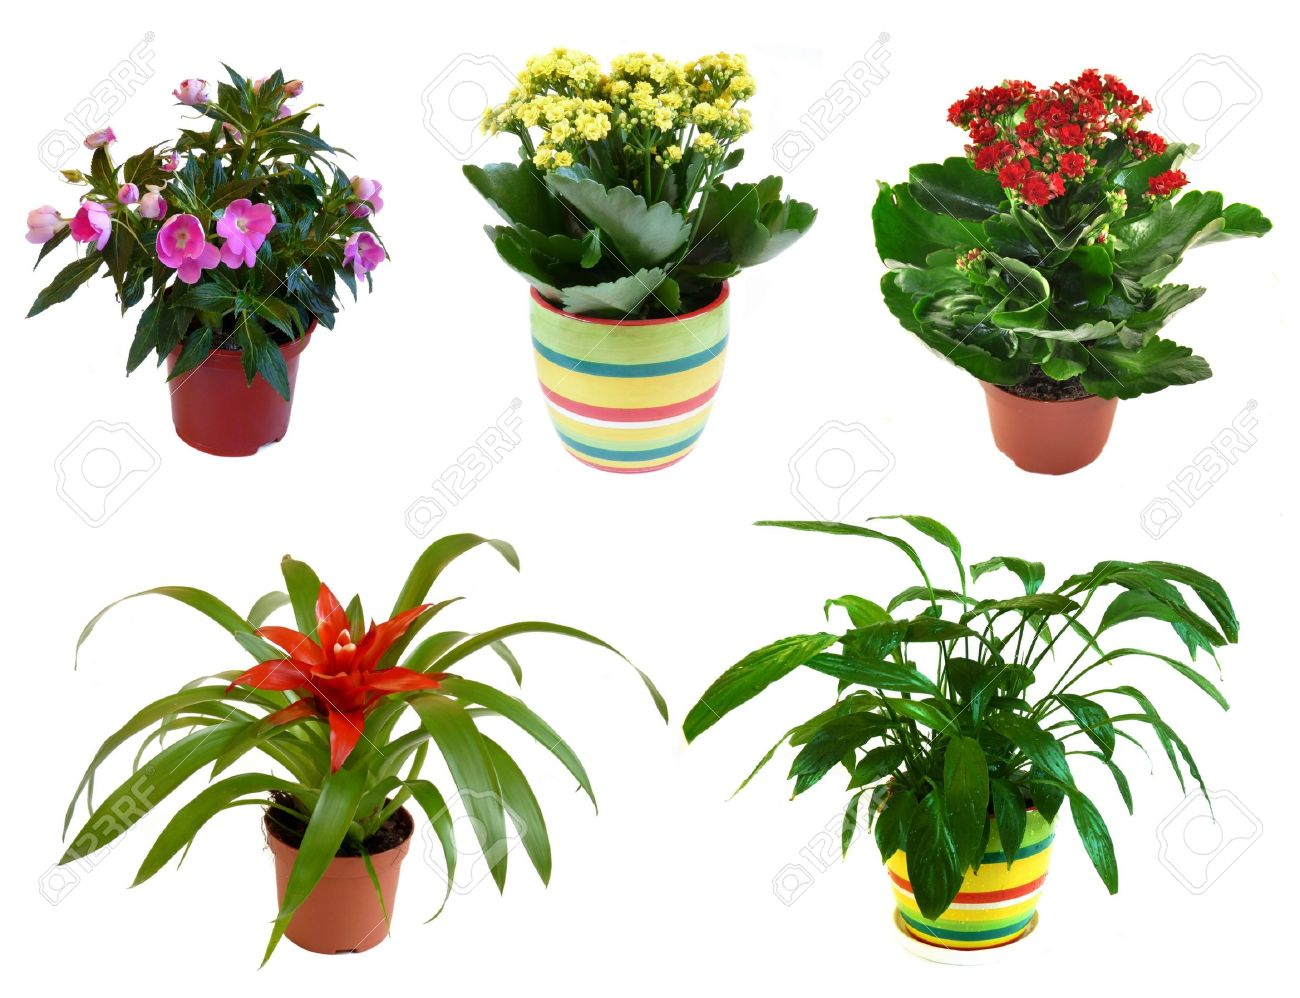 Potted flowers isolated on white background, collage - 10712822